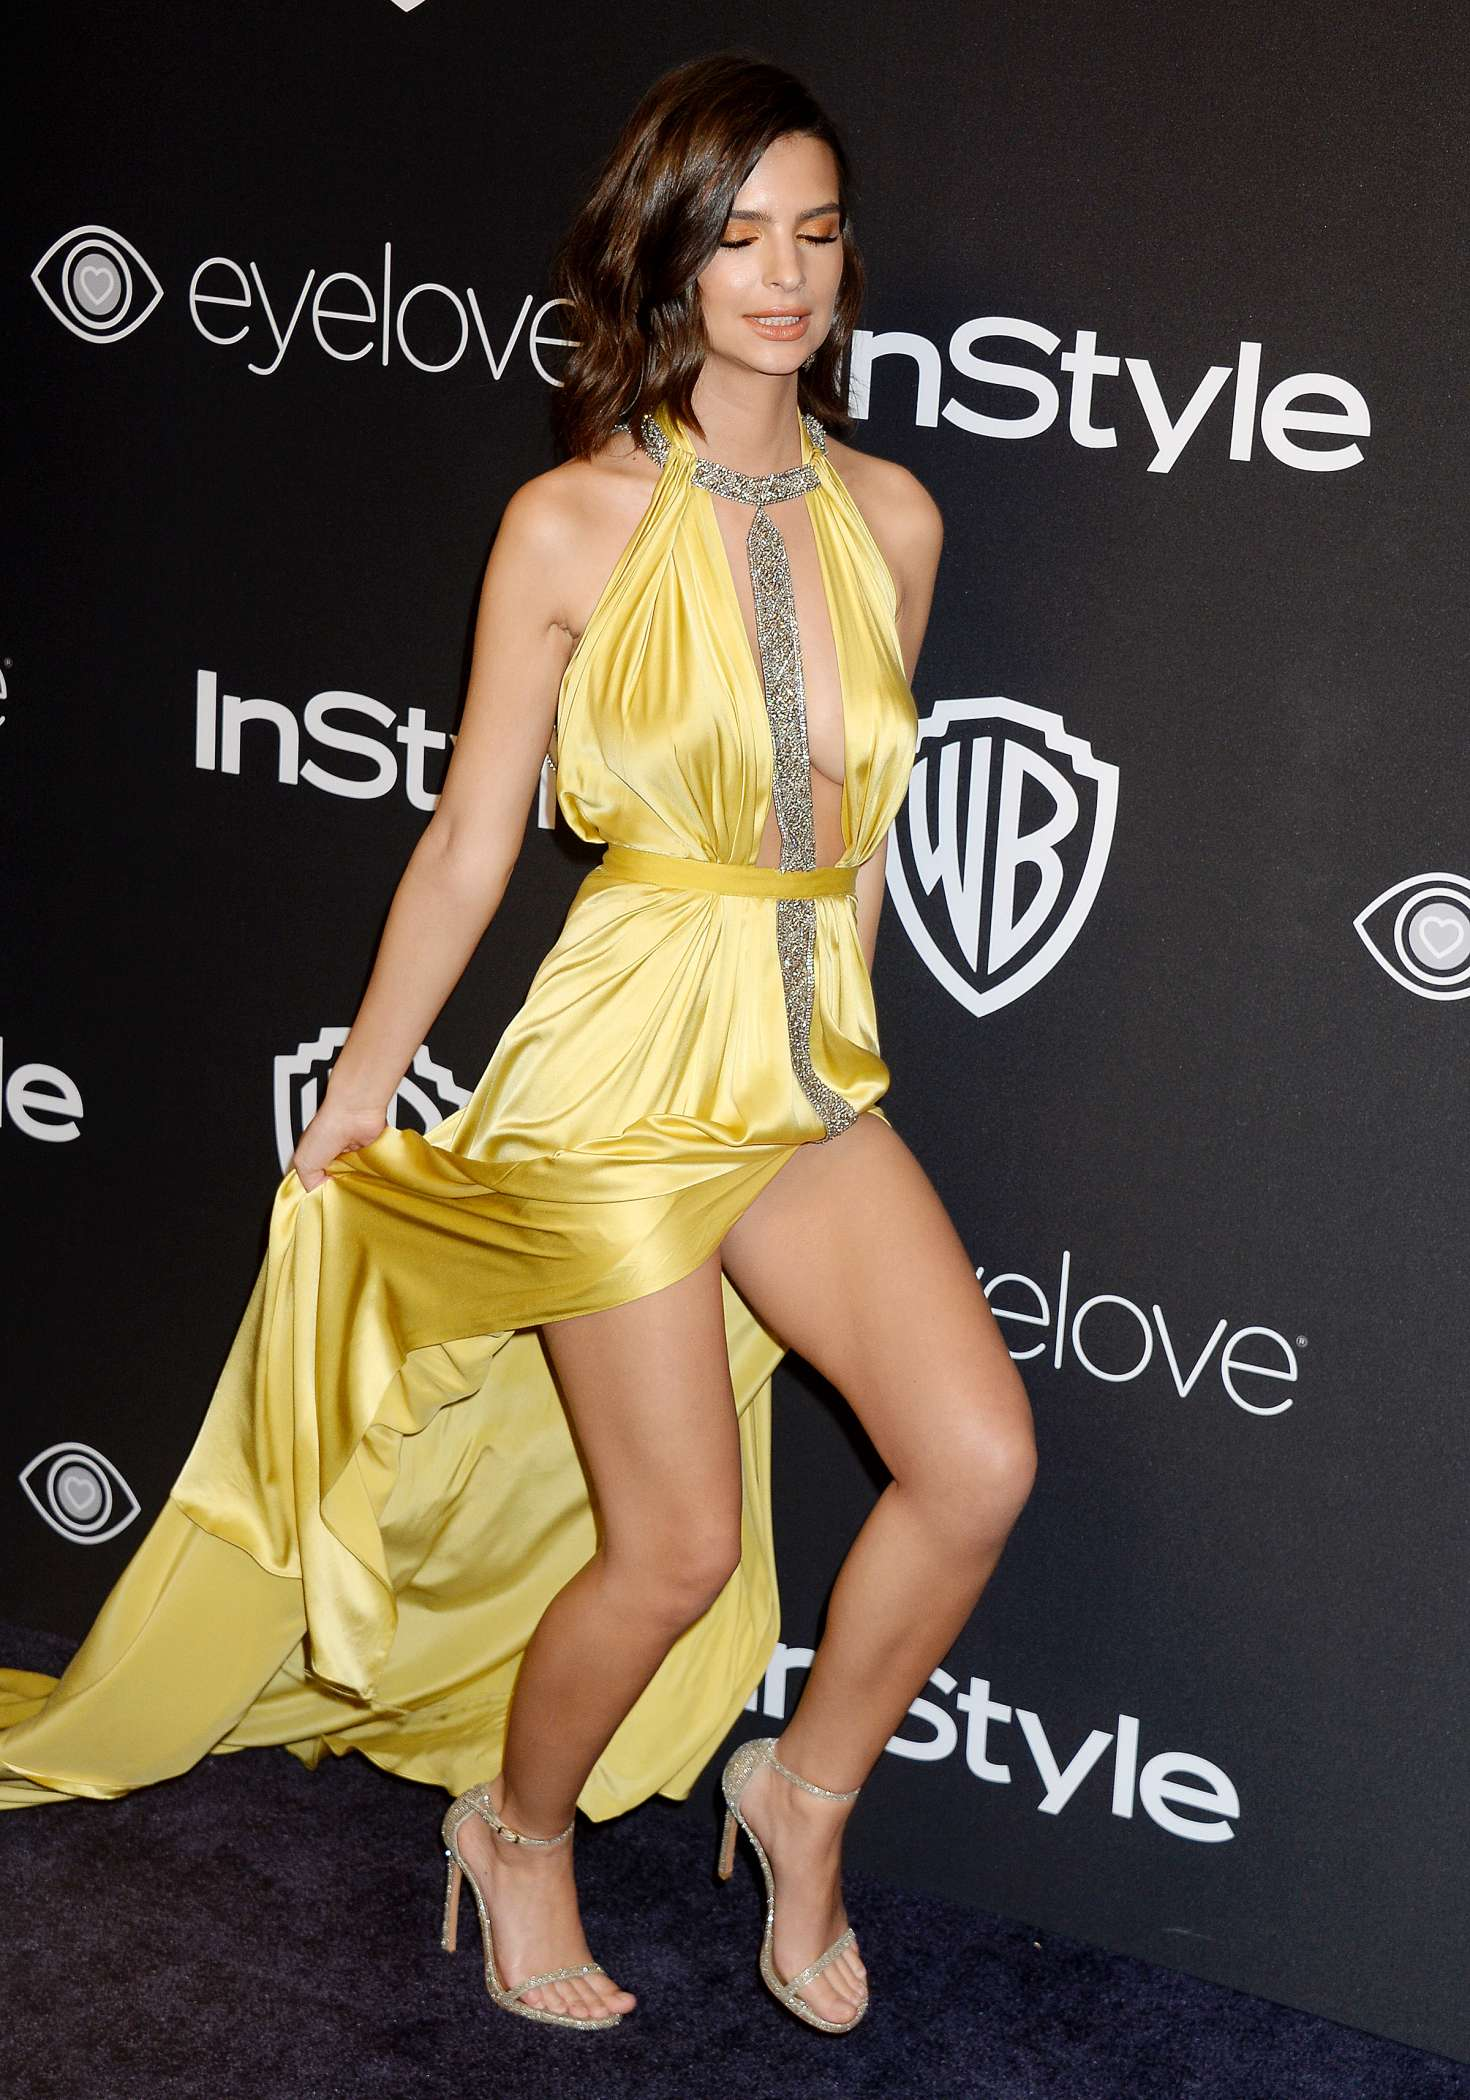 Katy Perry Yellow Dress Accident